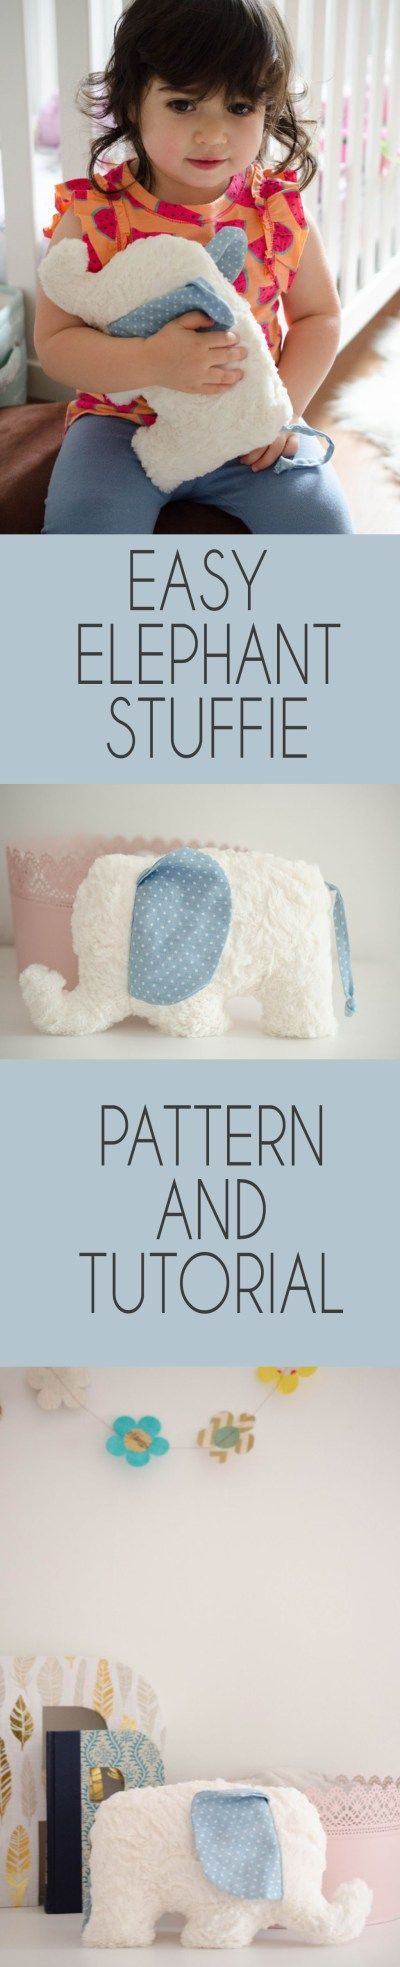 Sew Jersey Mama | Elephant Stuffie Sewing Pattern and Tutorial | Sewing Pattern | Easy Sewing Project | Sewing for Babies | Sewing for Baby | Baby Gift DIY